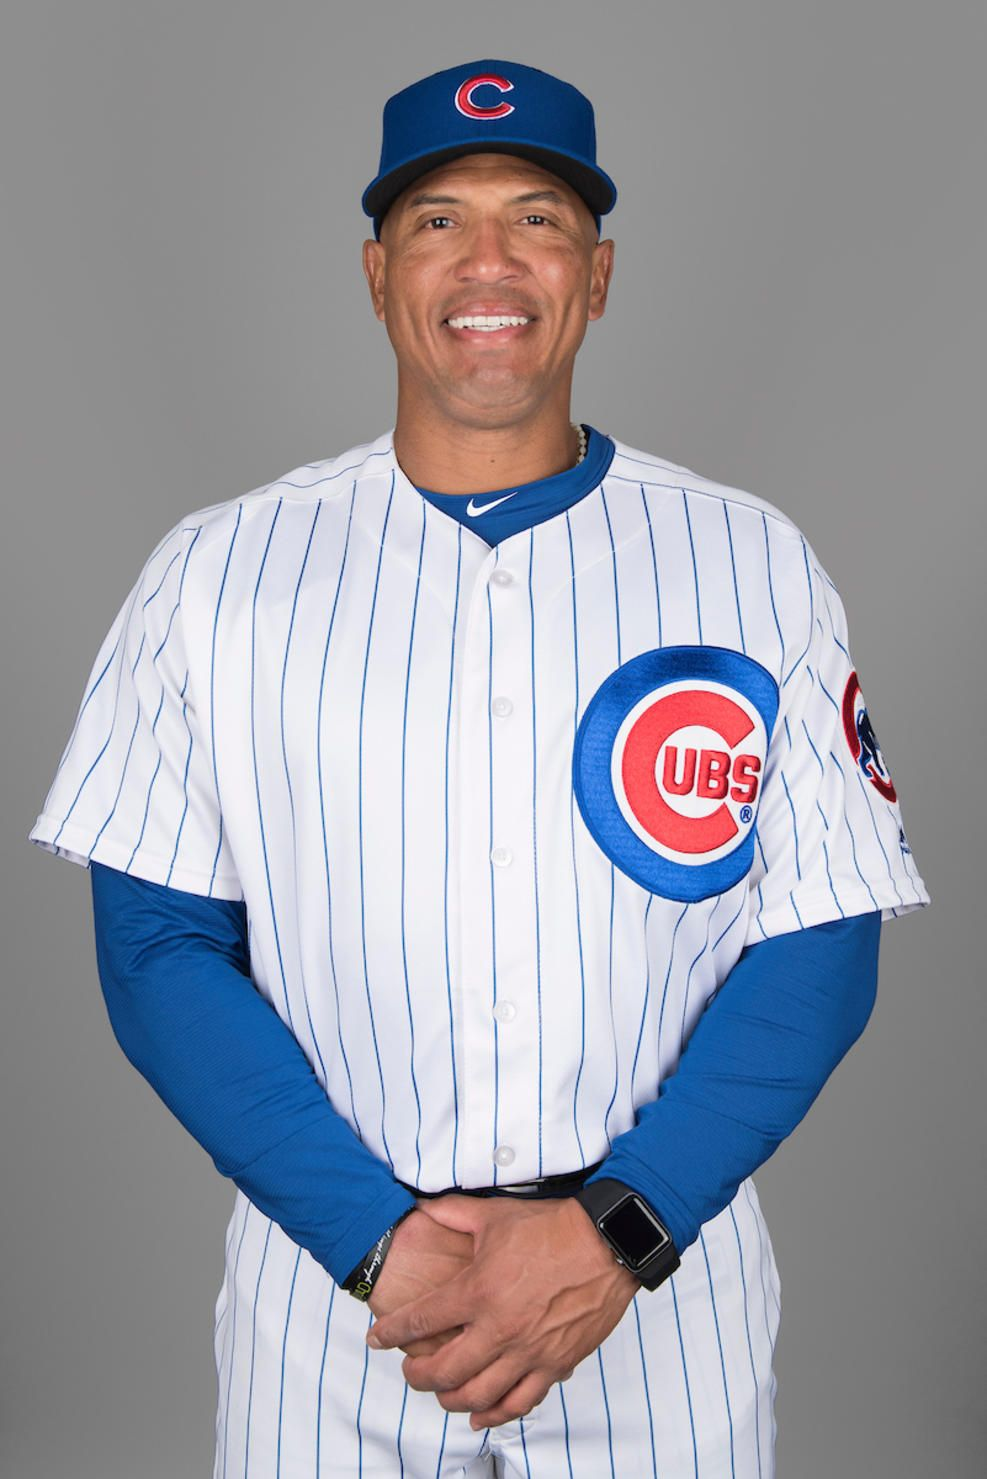 e30f98f84 See the Cubs' 2018 Photo Day Pictures - and Yes, Schwarber Looks Totally  Different - NBC Chicago